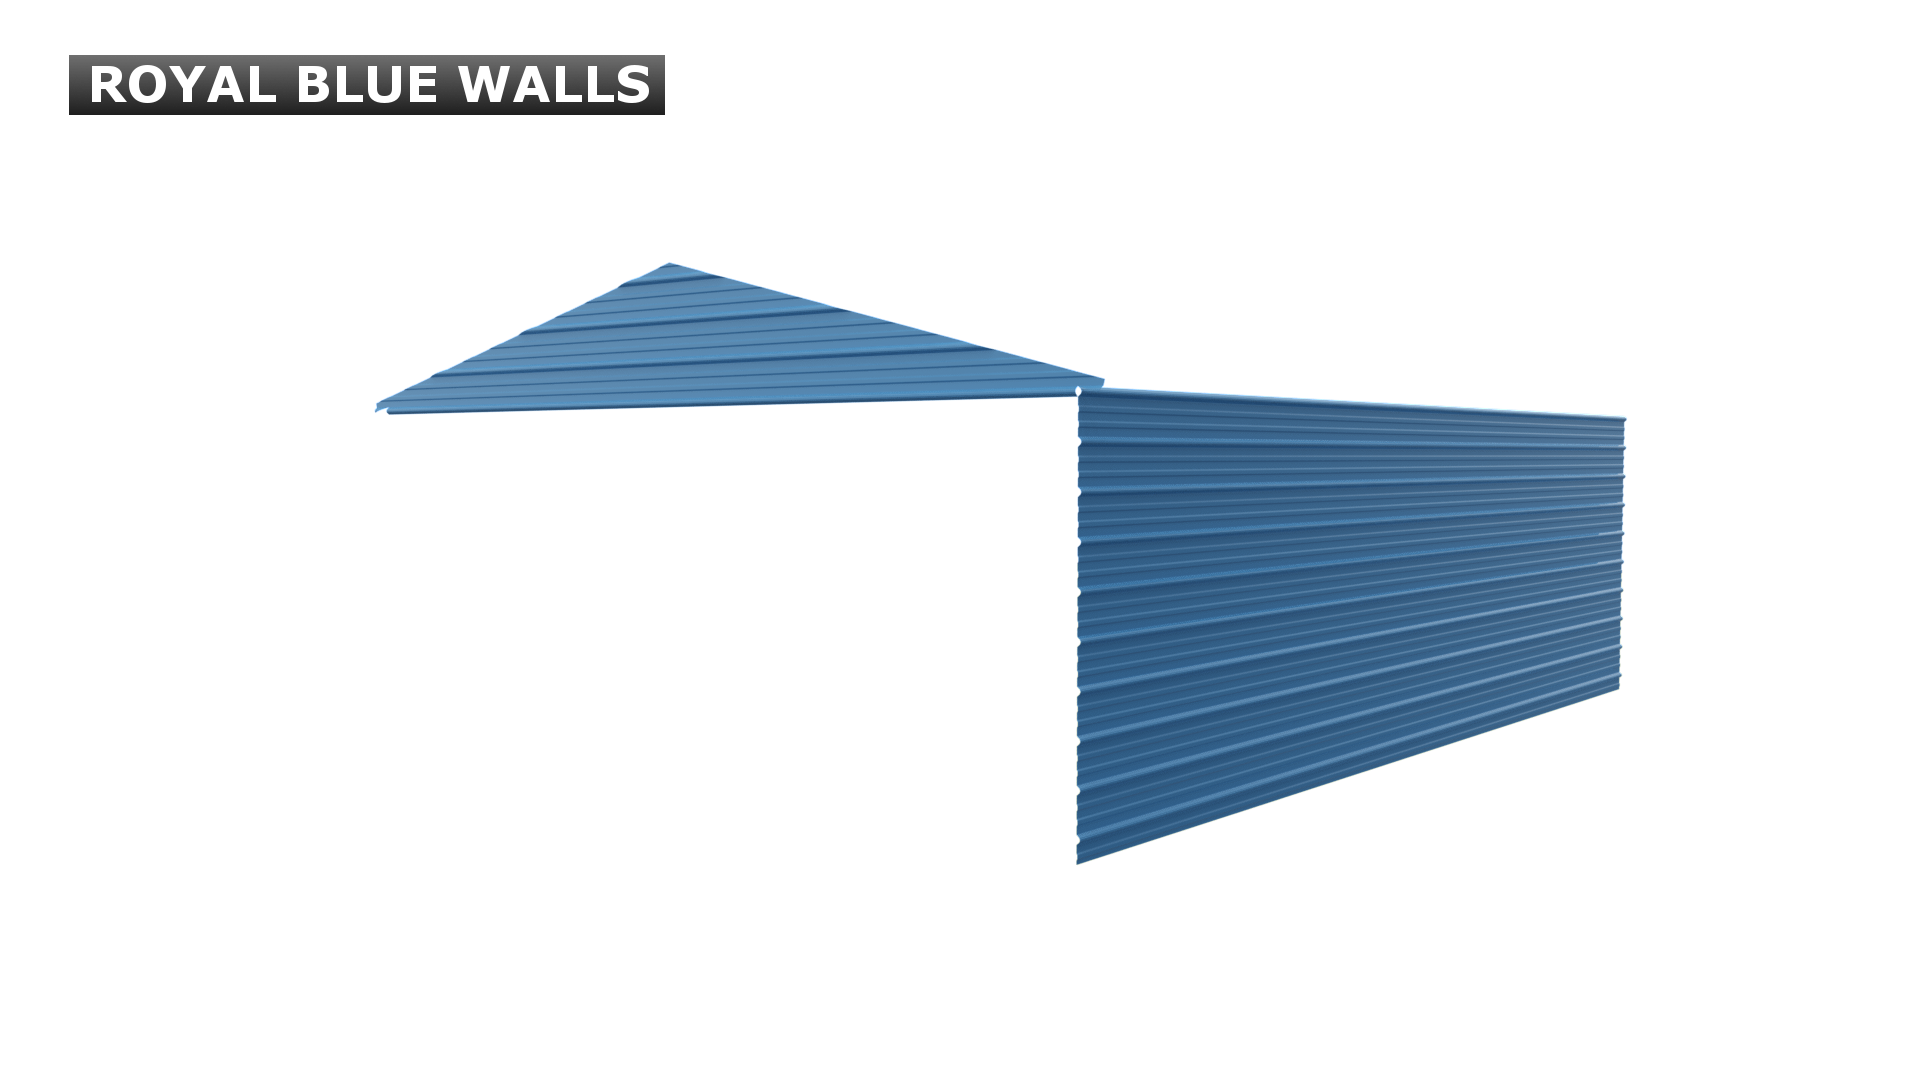 ROYAL BLUE WALLS